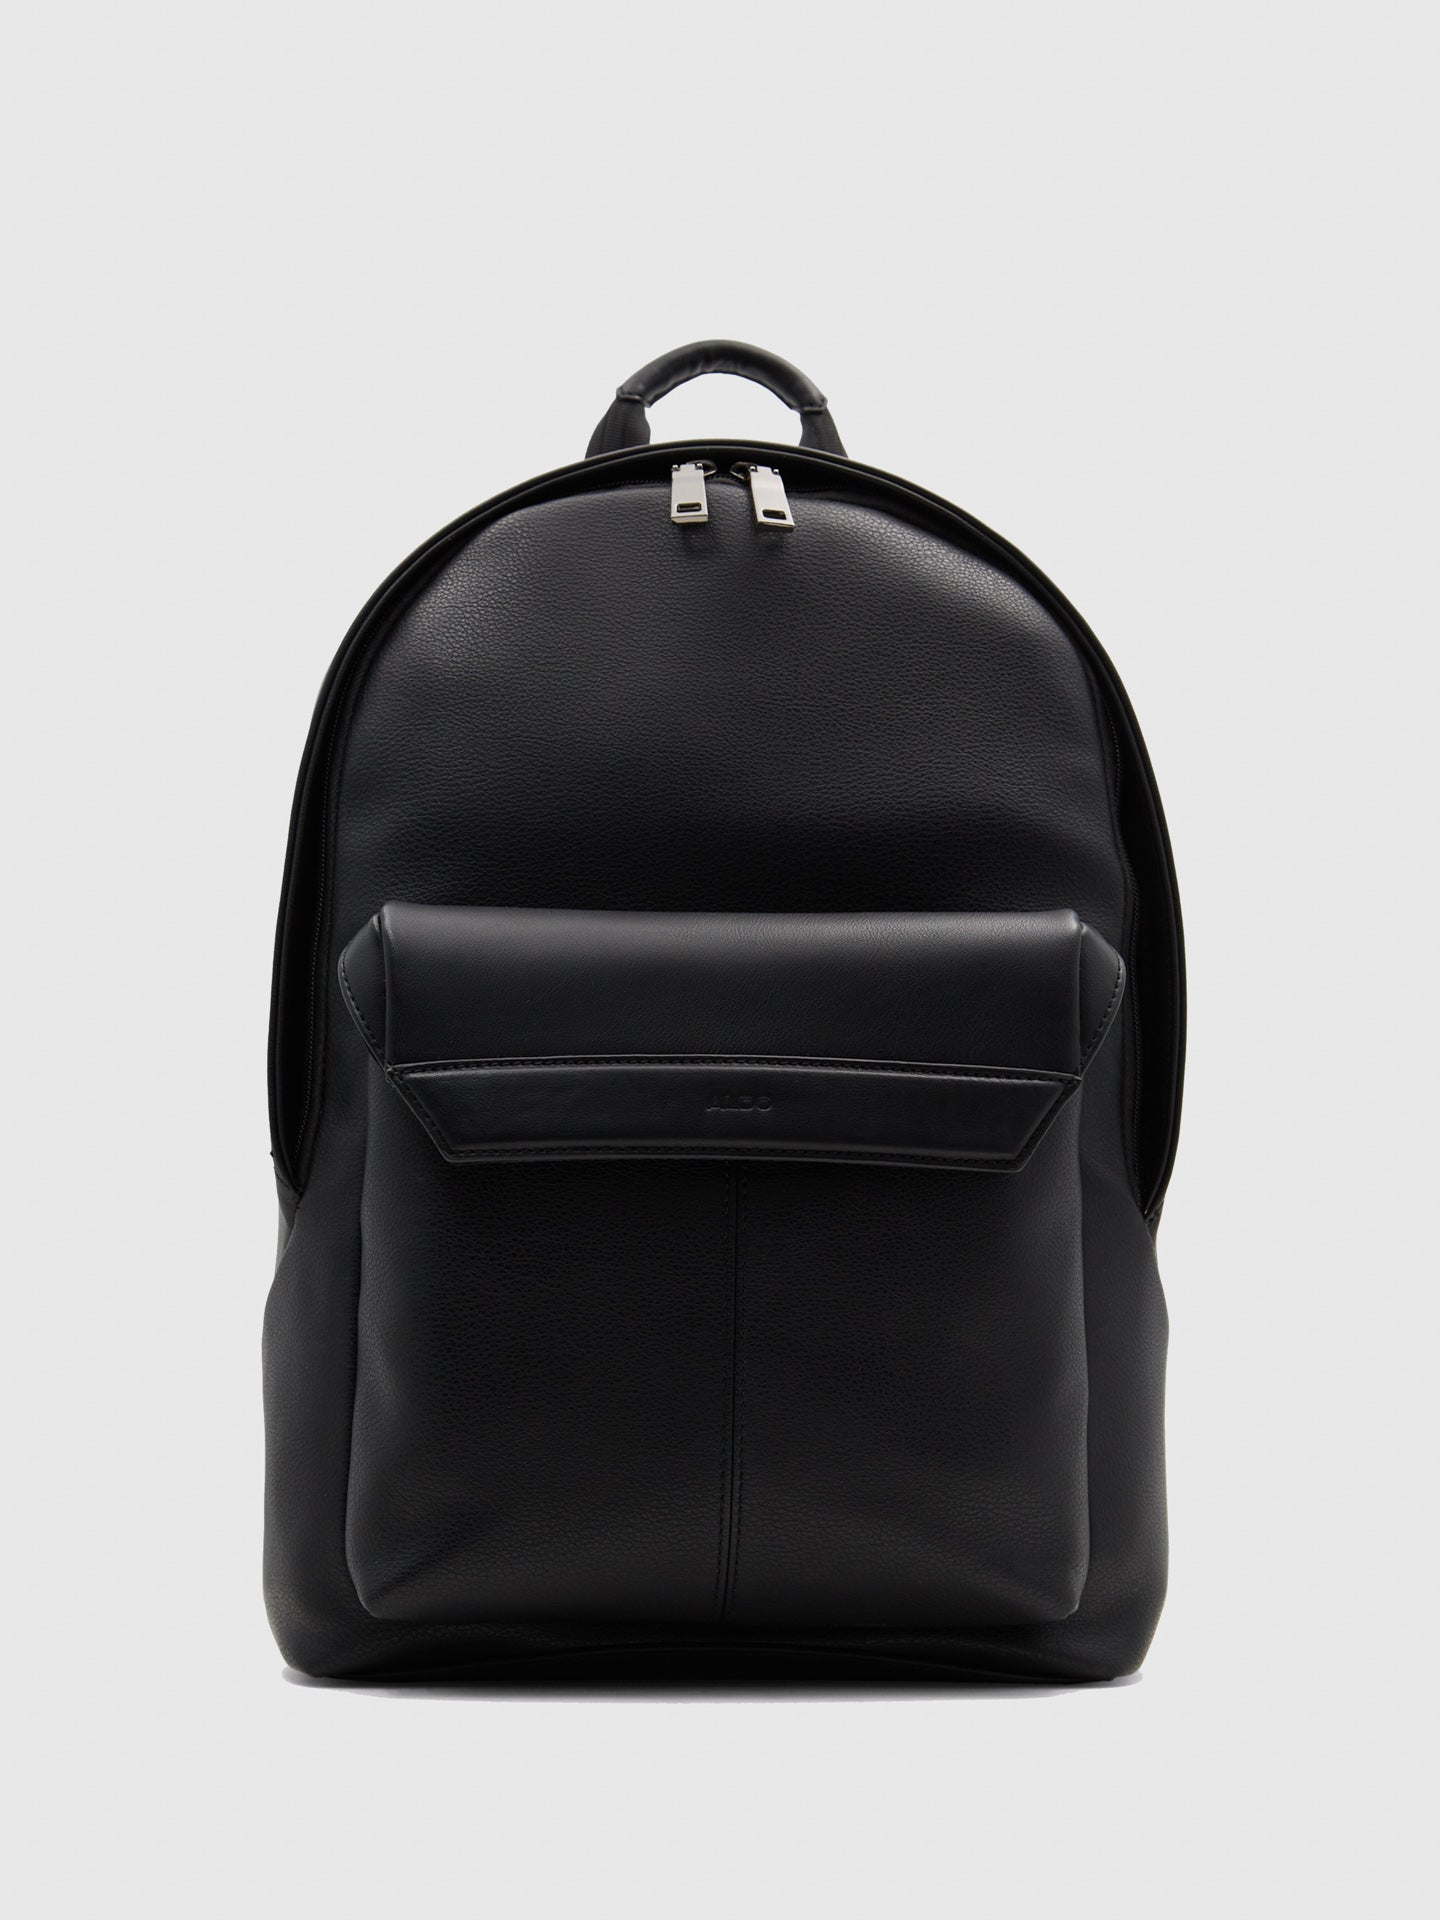 Aldo Black Backpack